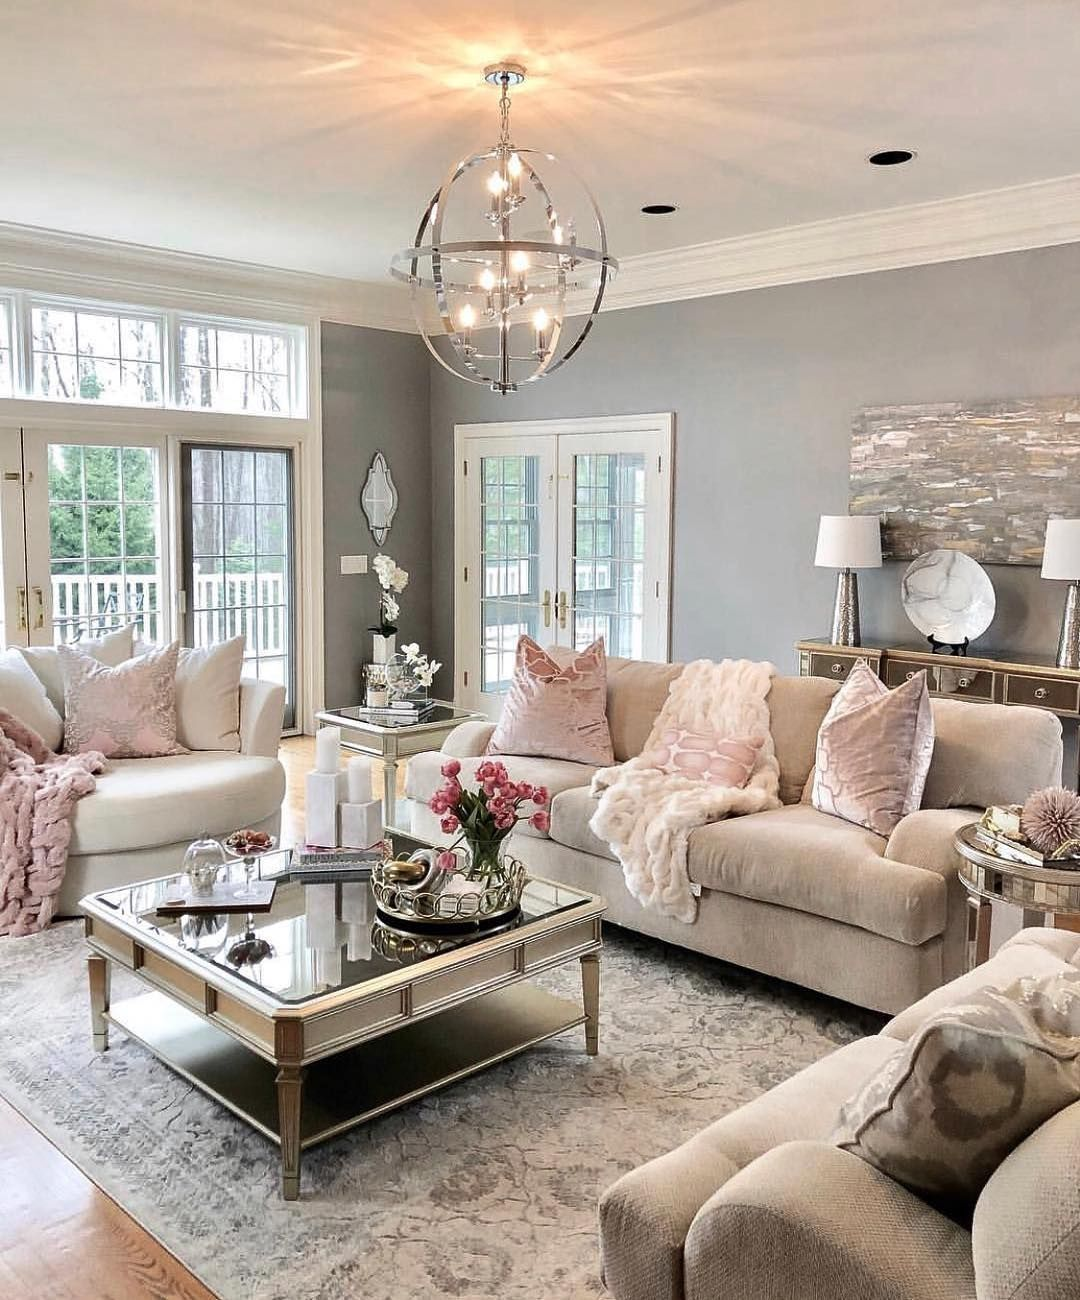 78 models very snug and practical decoration ideas for on amazing inspiring modern living room ideas for your home id=23296